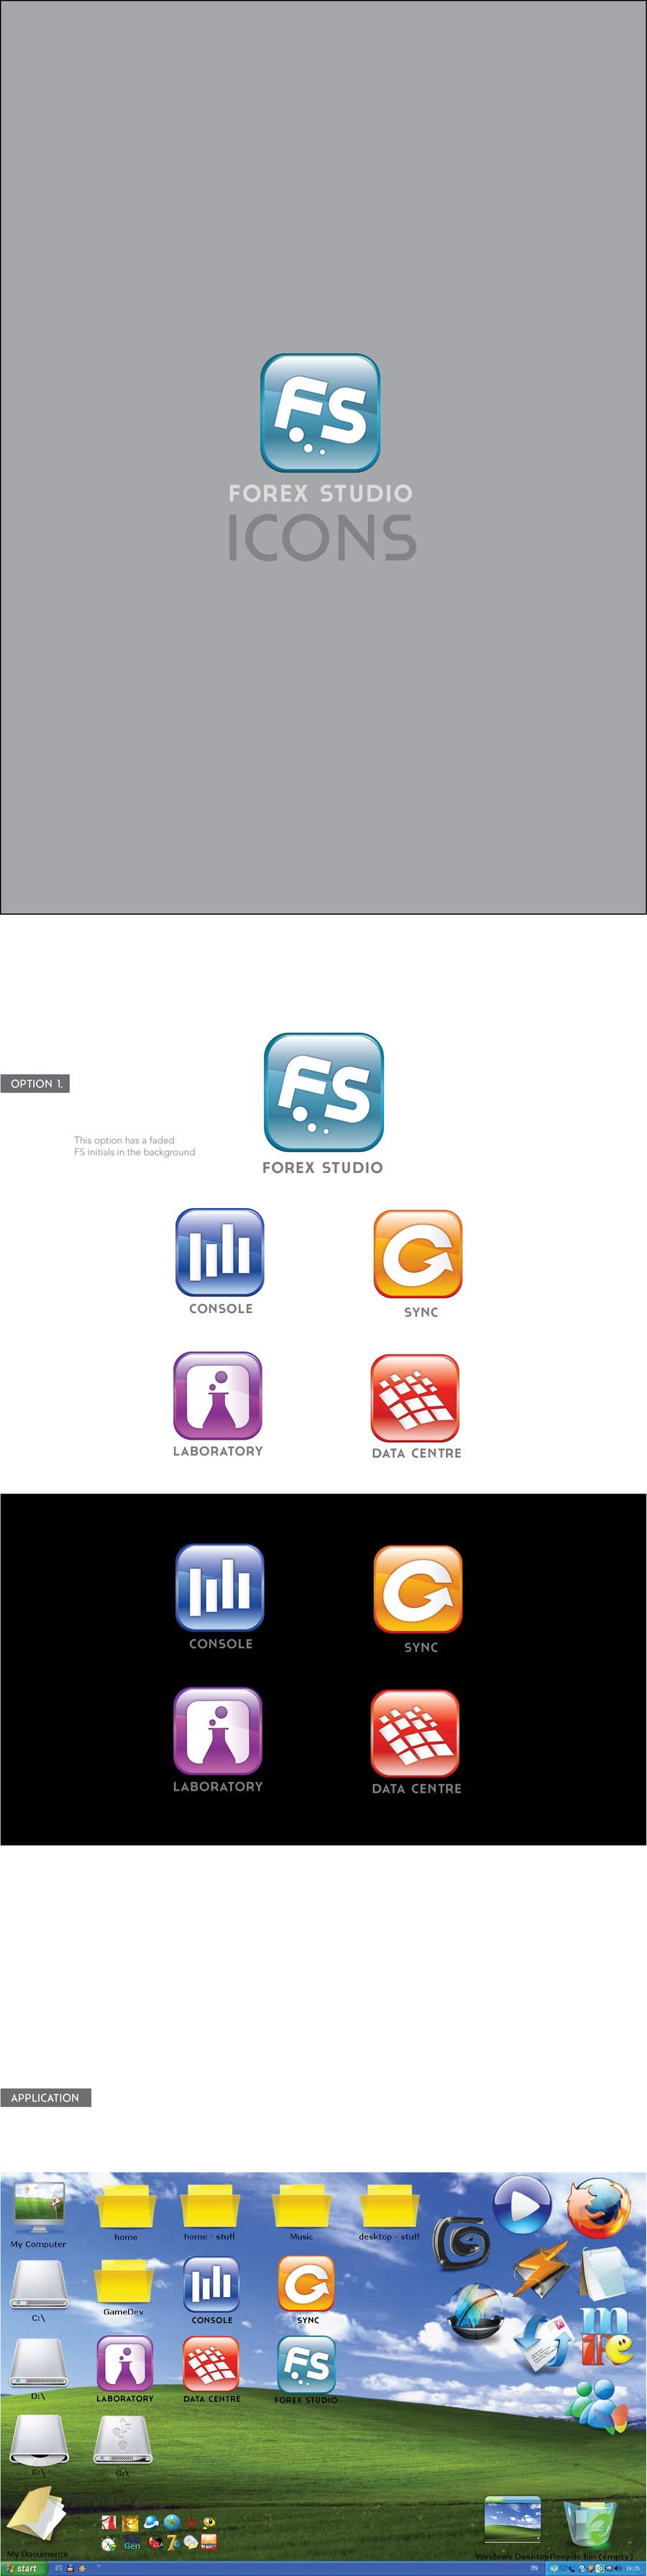 Bài tham dự cuộc thi #                                        40                                      cho                                         Application Icons for Forex Studio (Windows software)